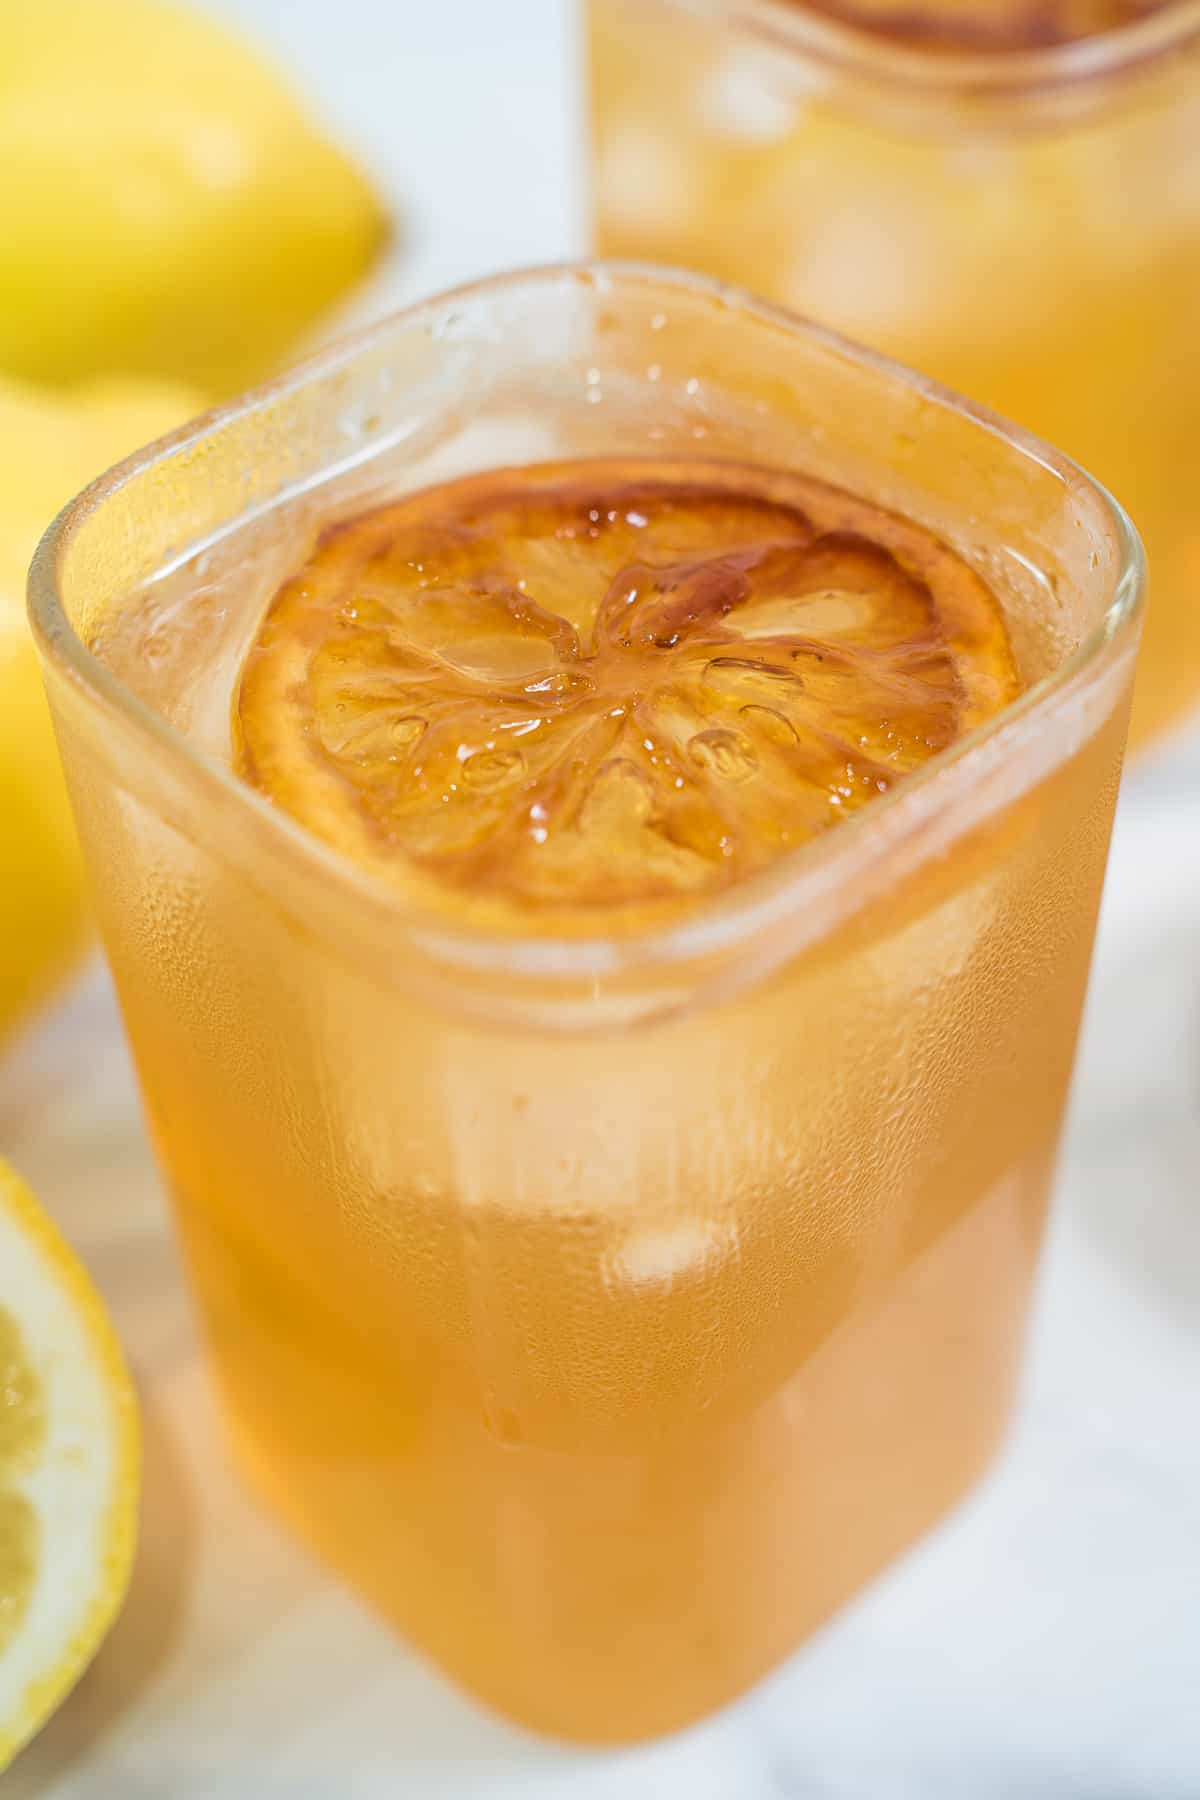 A glass of brown sugar lemonade with ice cubes